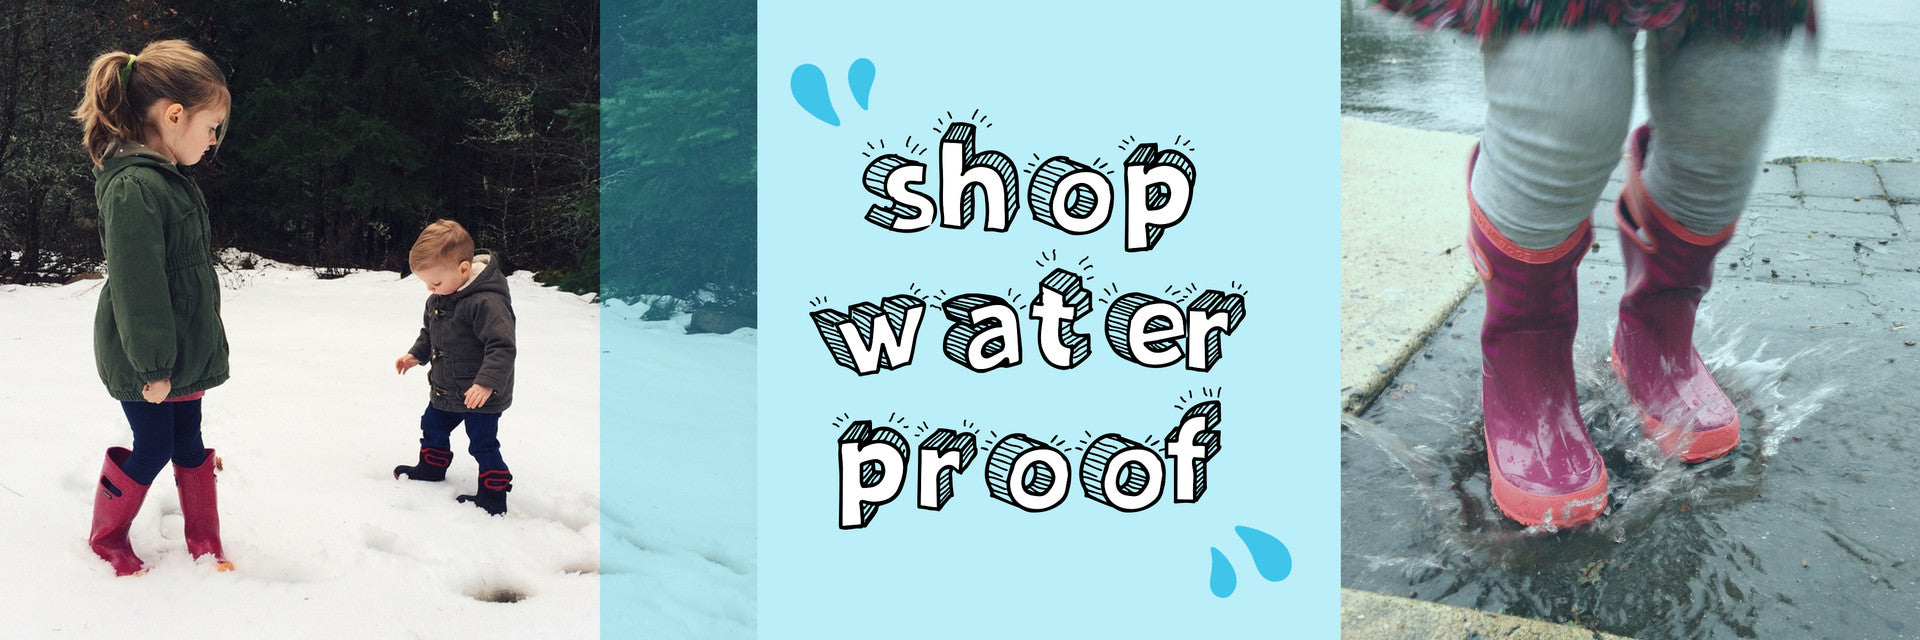 SHOP WATER PROOF